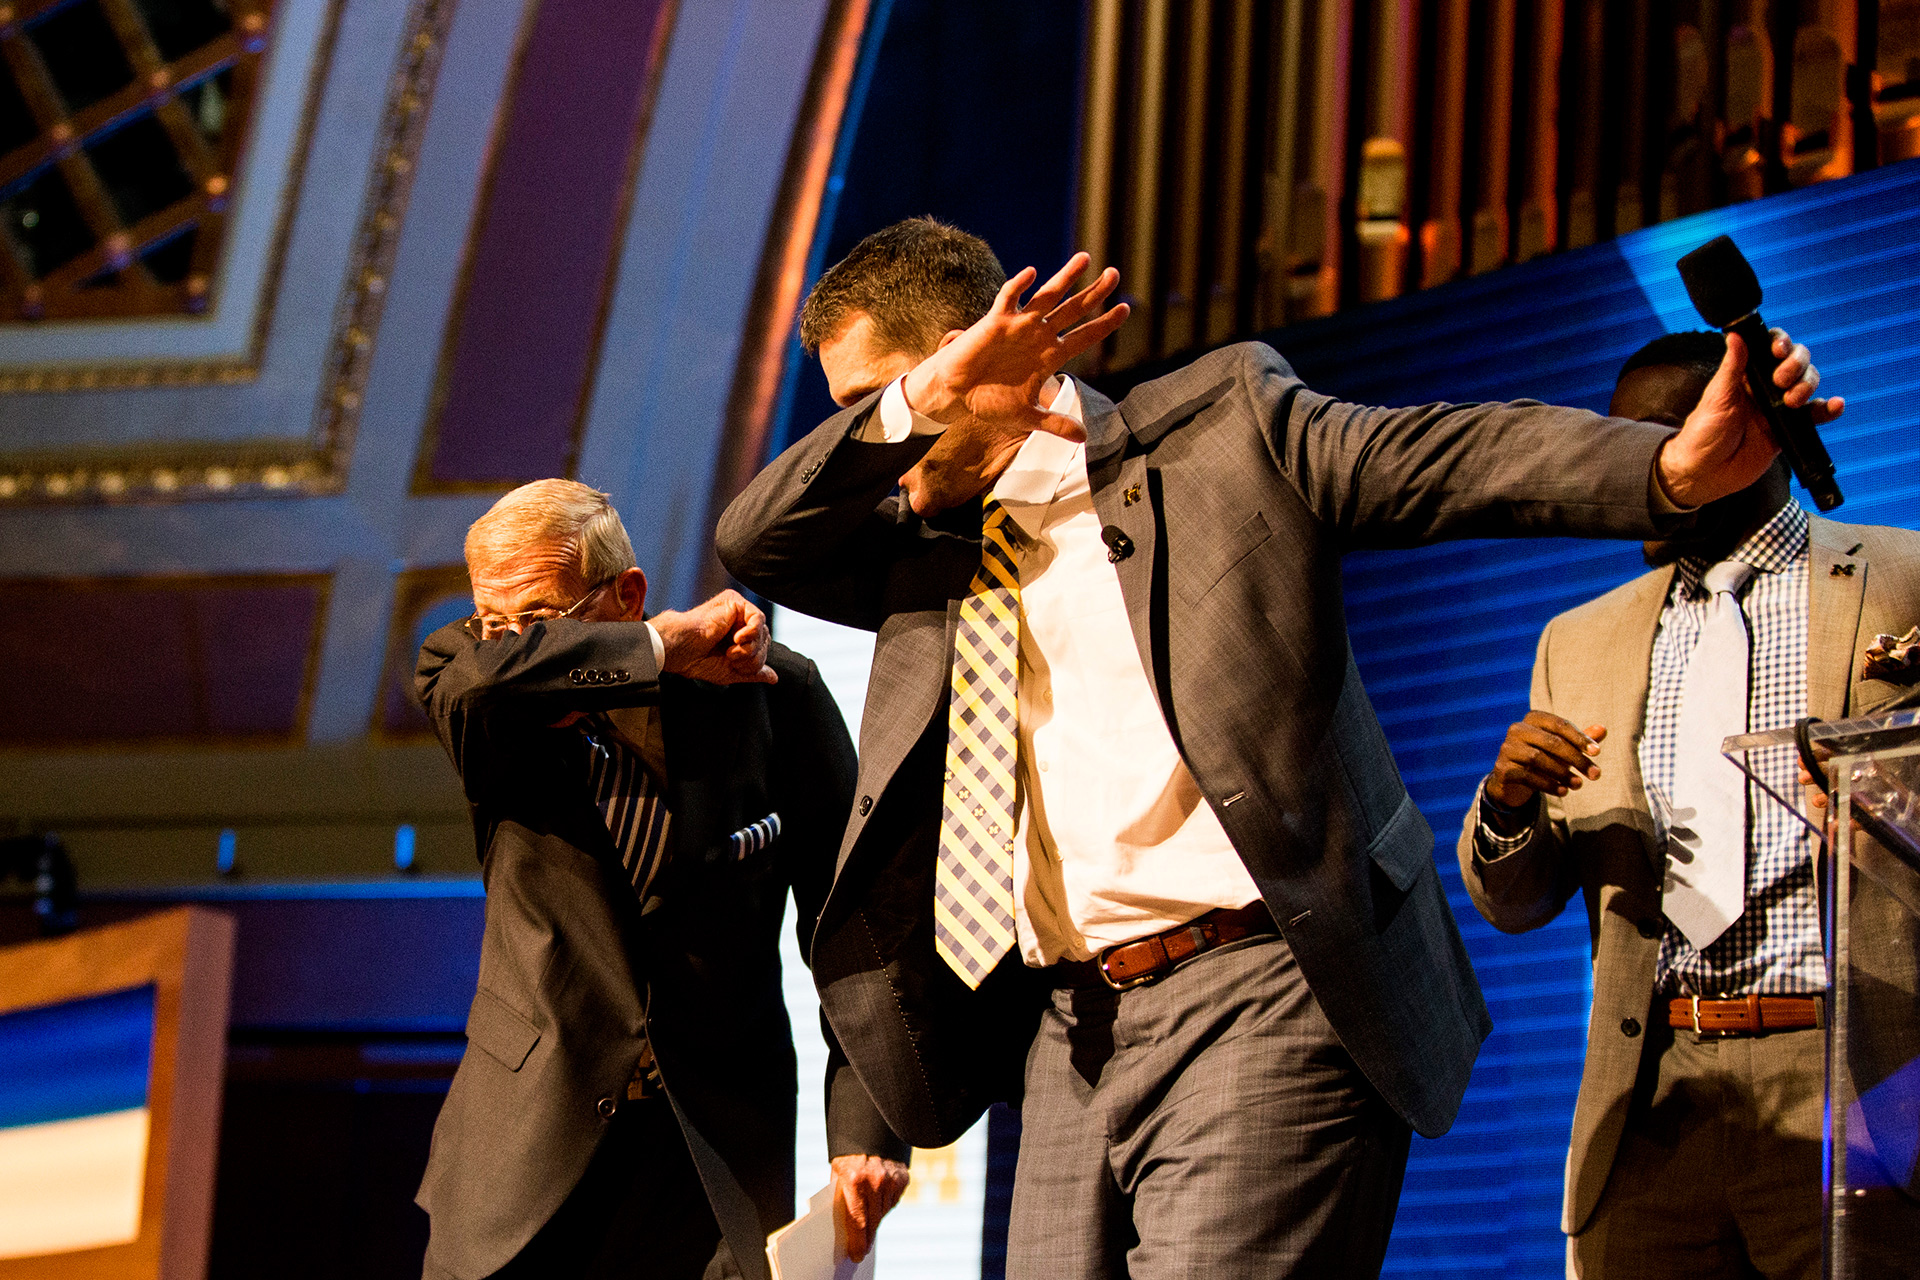 Lou Holtz and Coach Harbaugh dab.